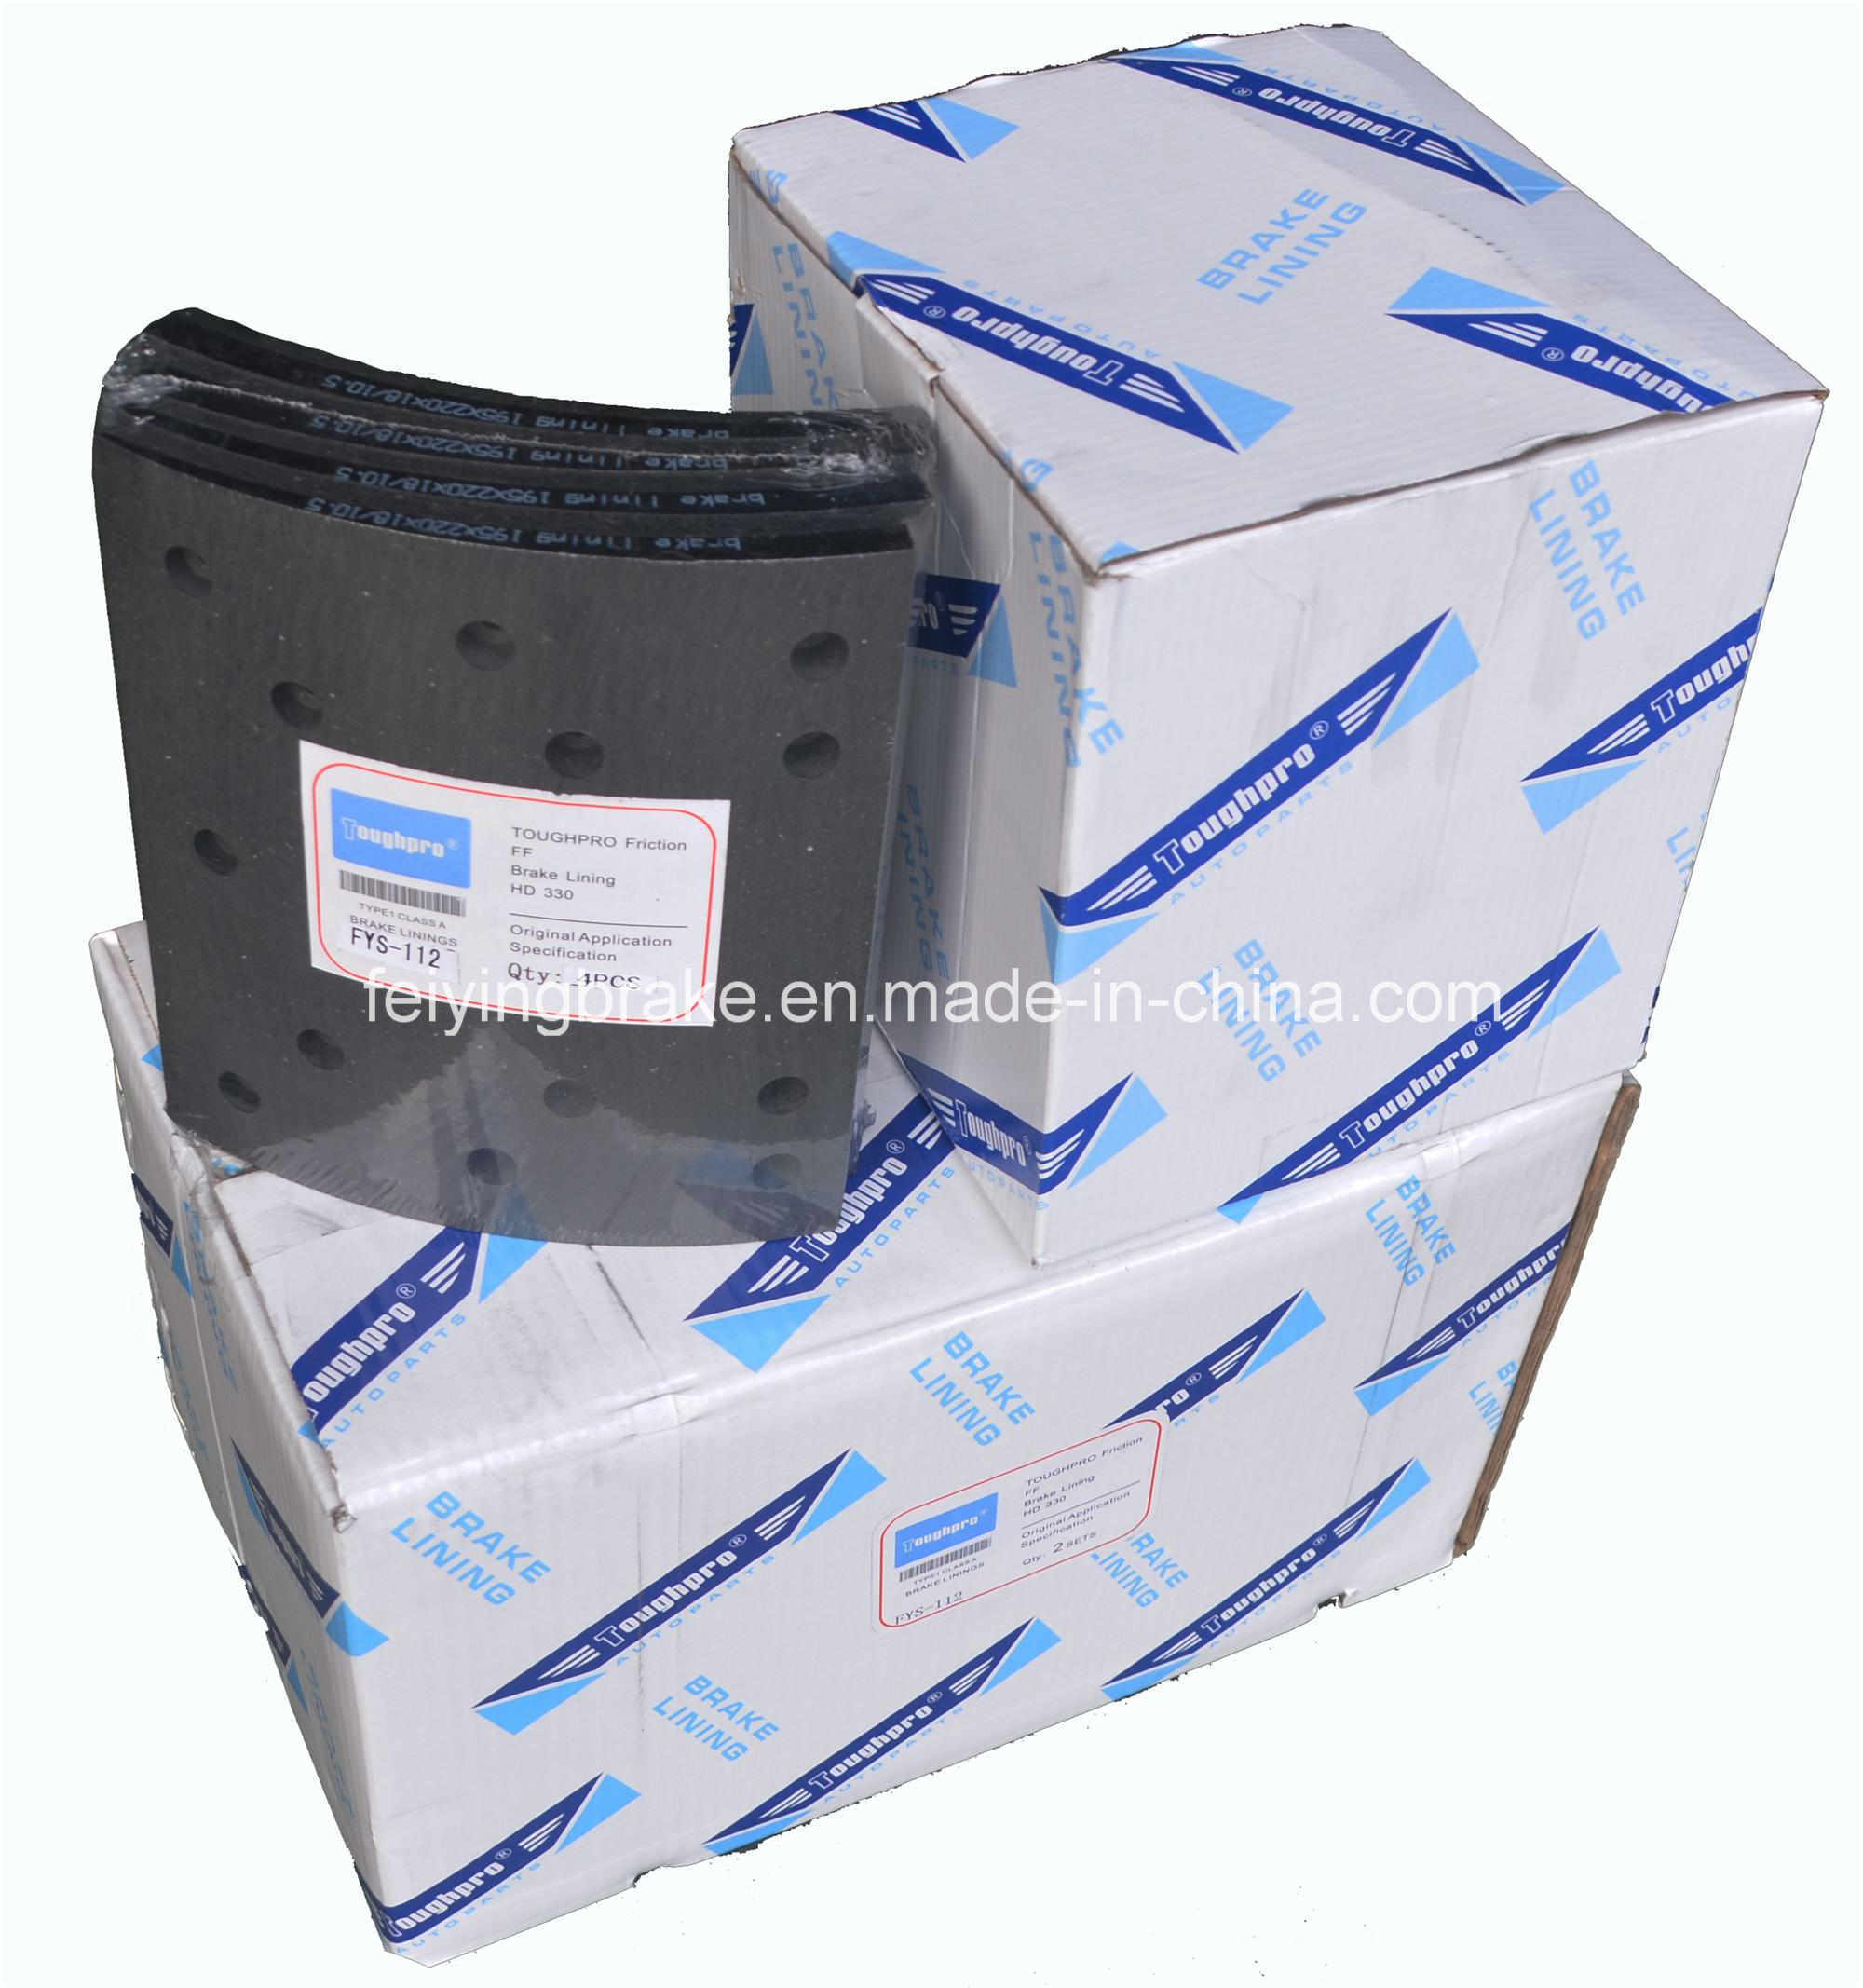 High Quality Brake Lining (WVA: 19496 BFMC: MP/36/2)